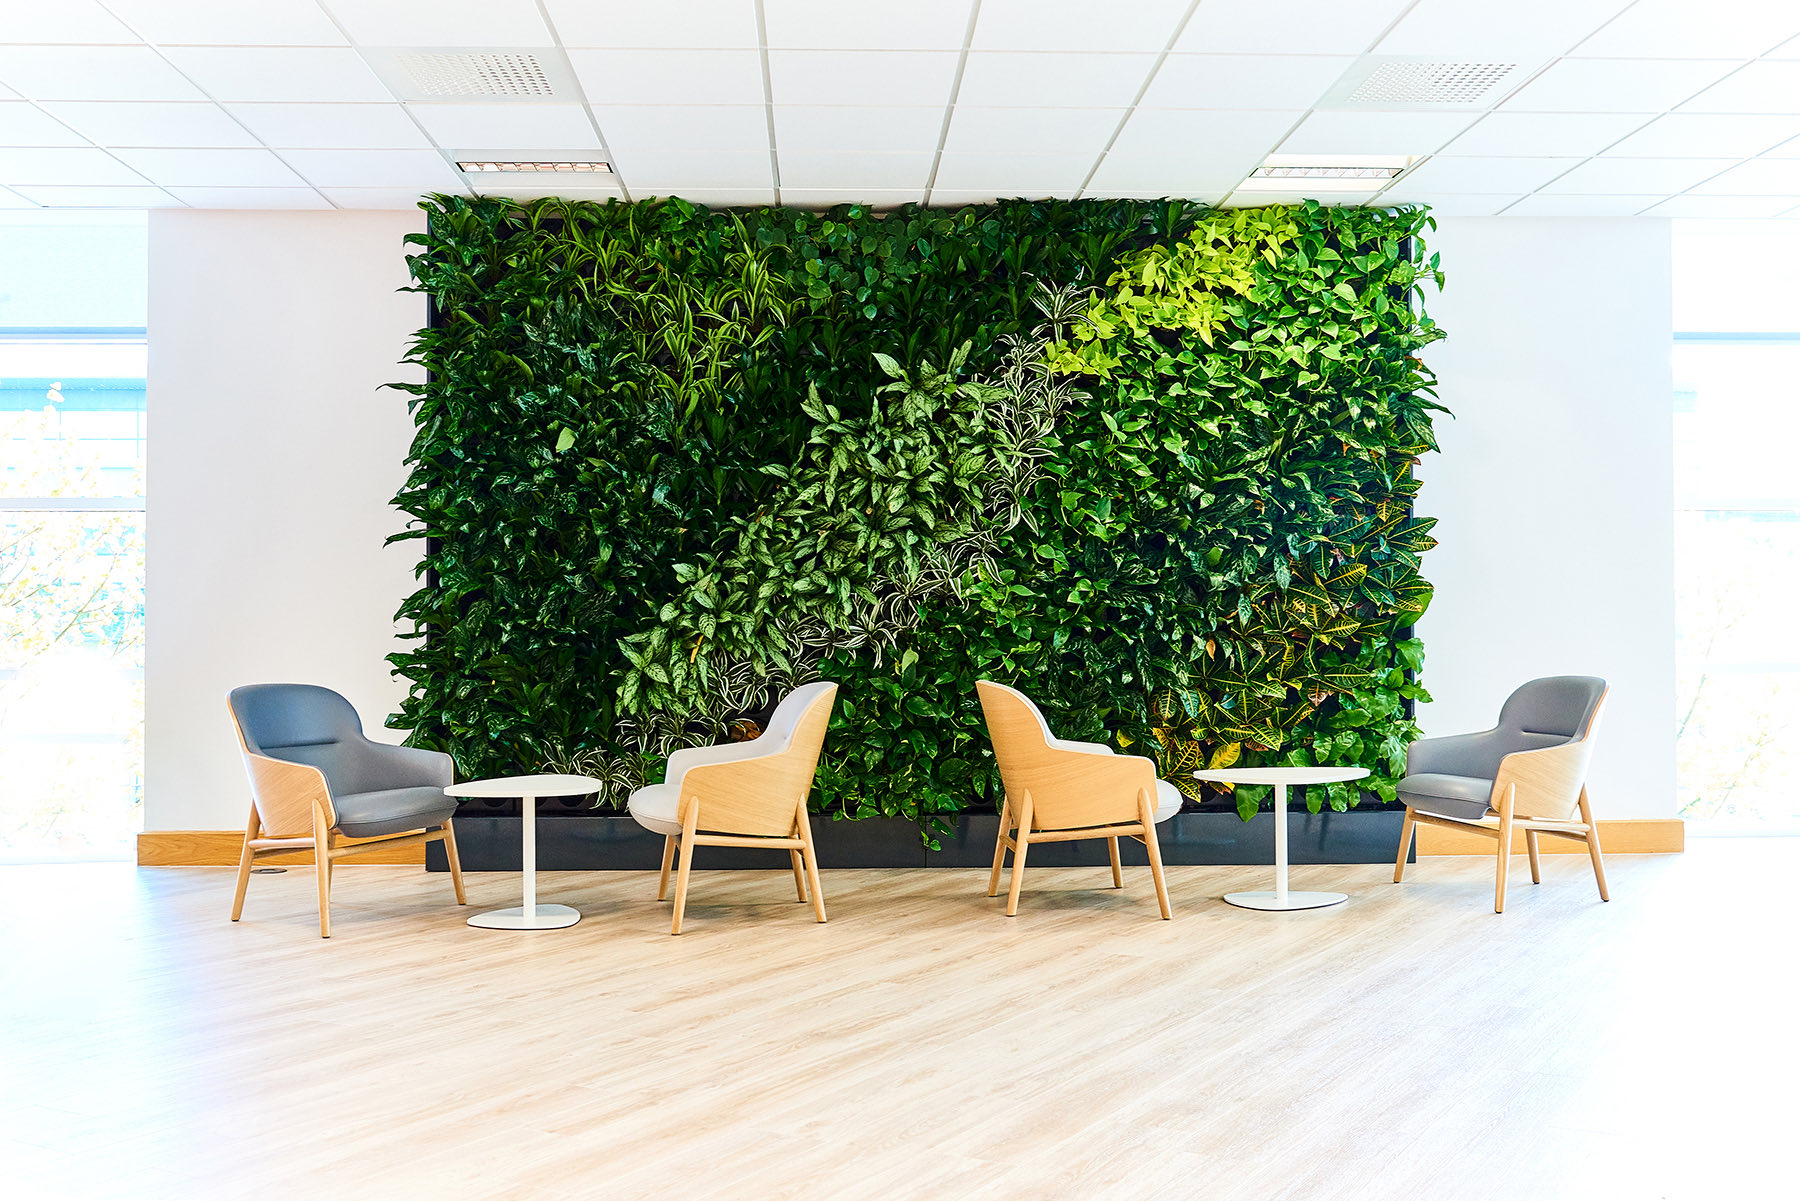 A Look Inside Private Technology Company Offices in Newcastle